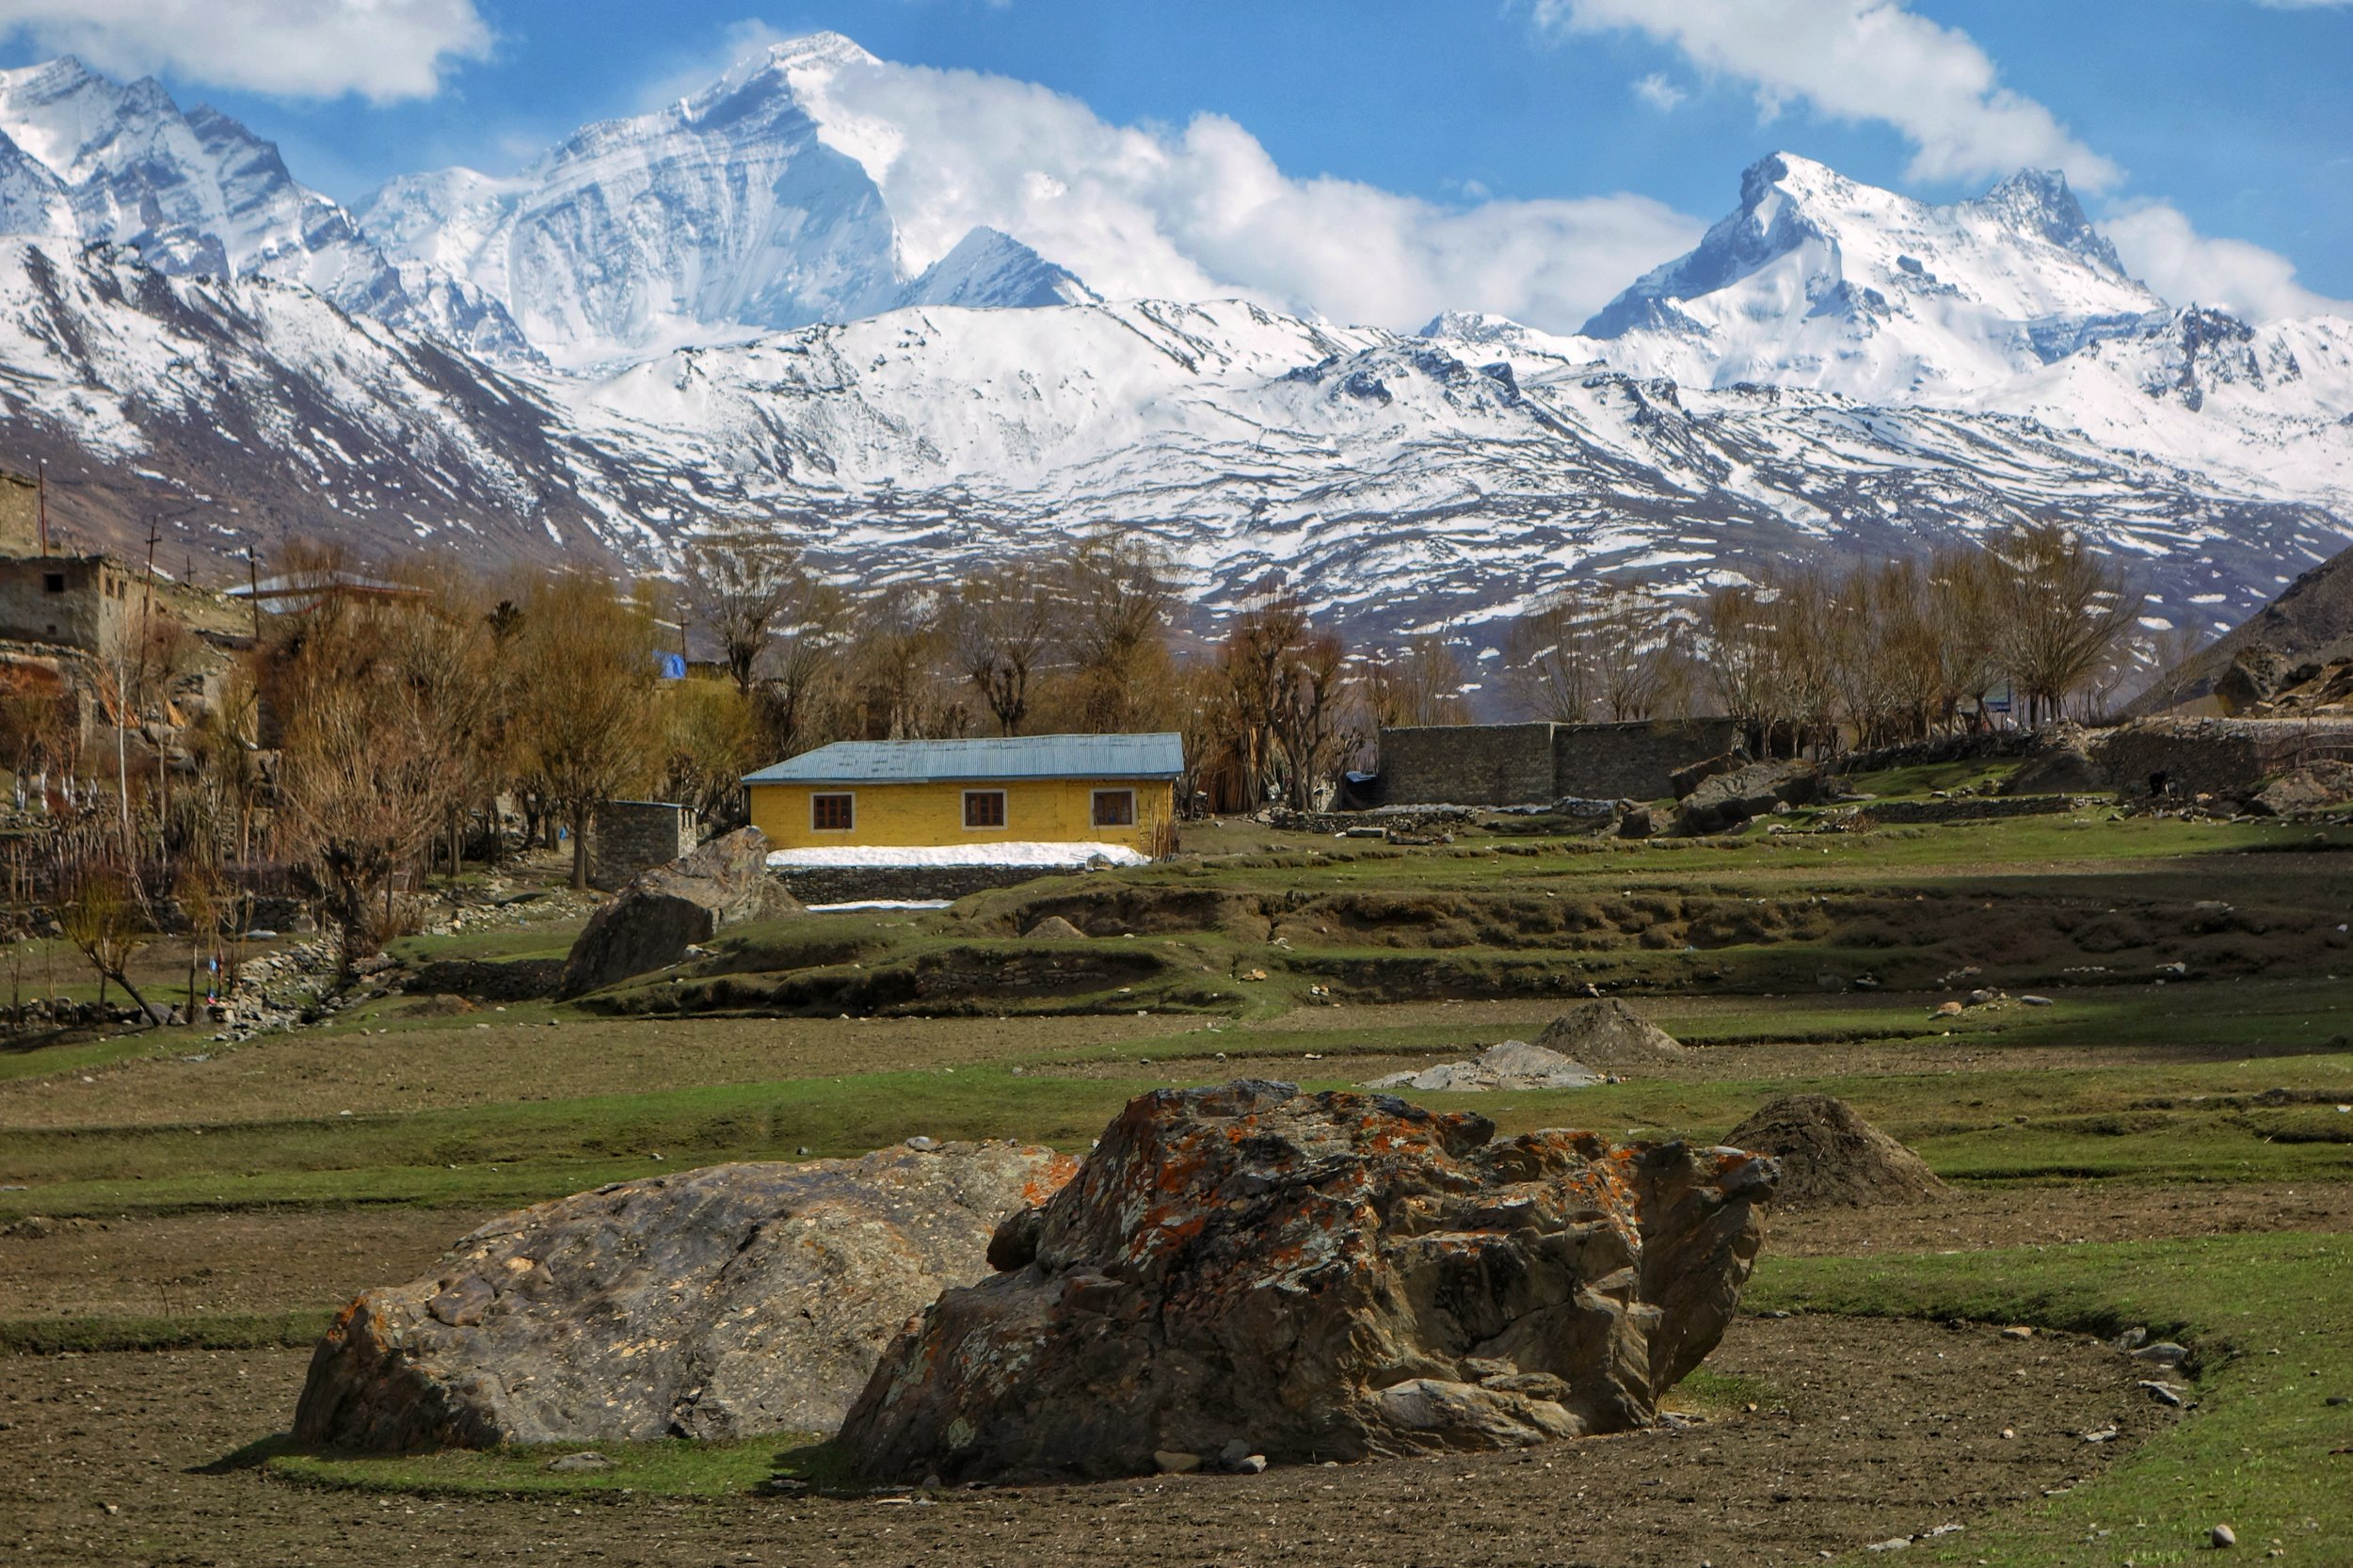 The Highest Himalayan Peak in Ind,an controlled Territory in Jammu and Kashmir, Mt.Nun at 7135 m (23409 ft) amsl.